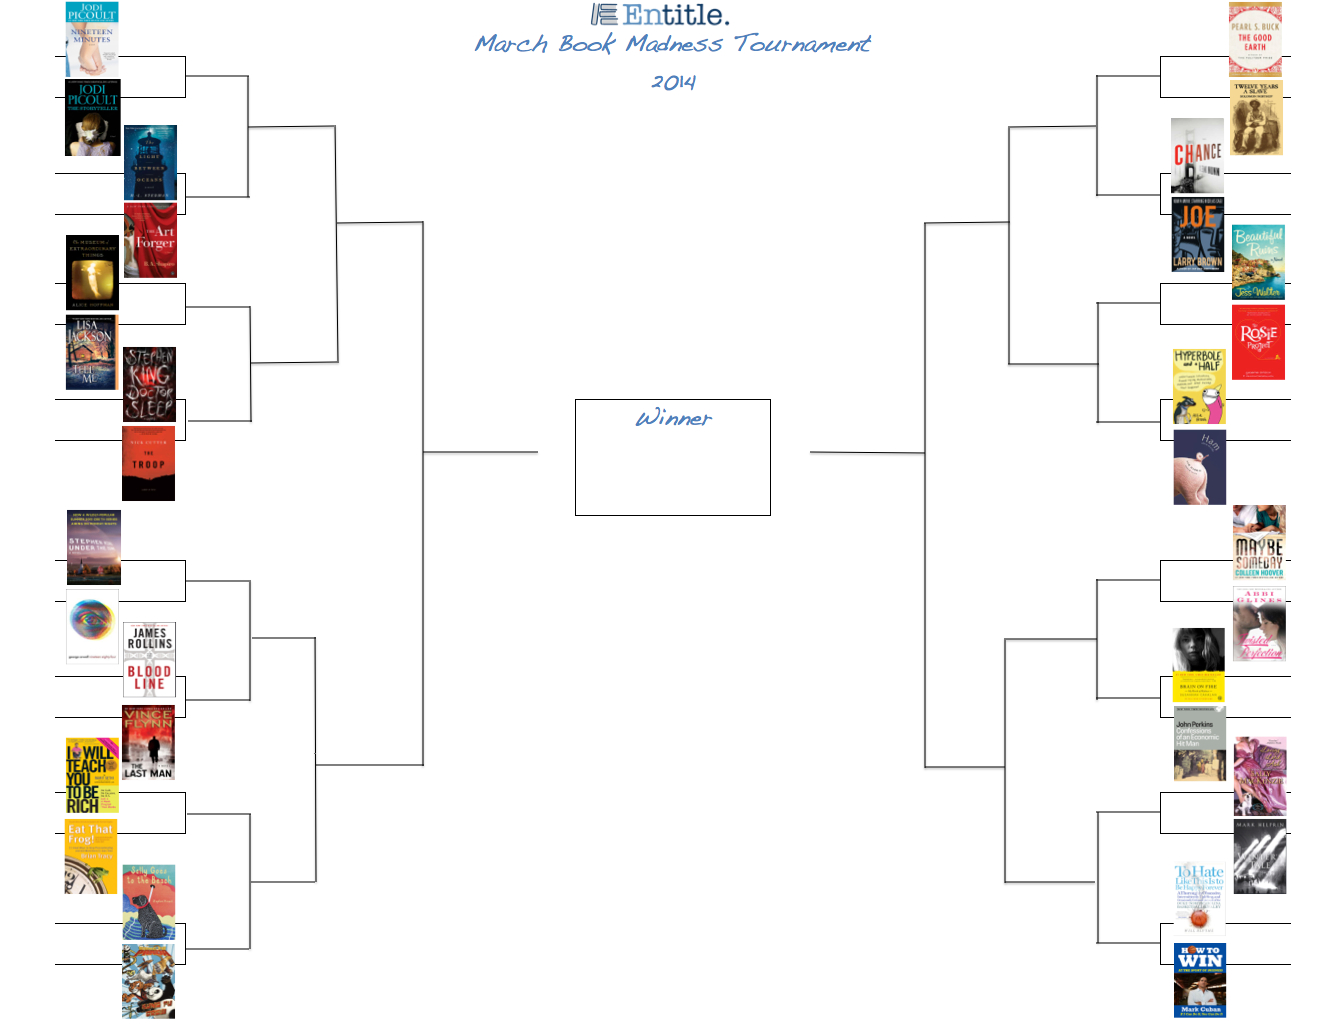 Entitle March Book Madness